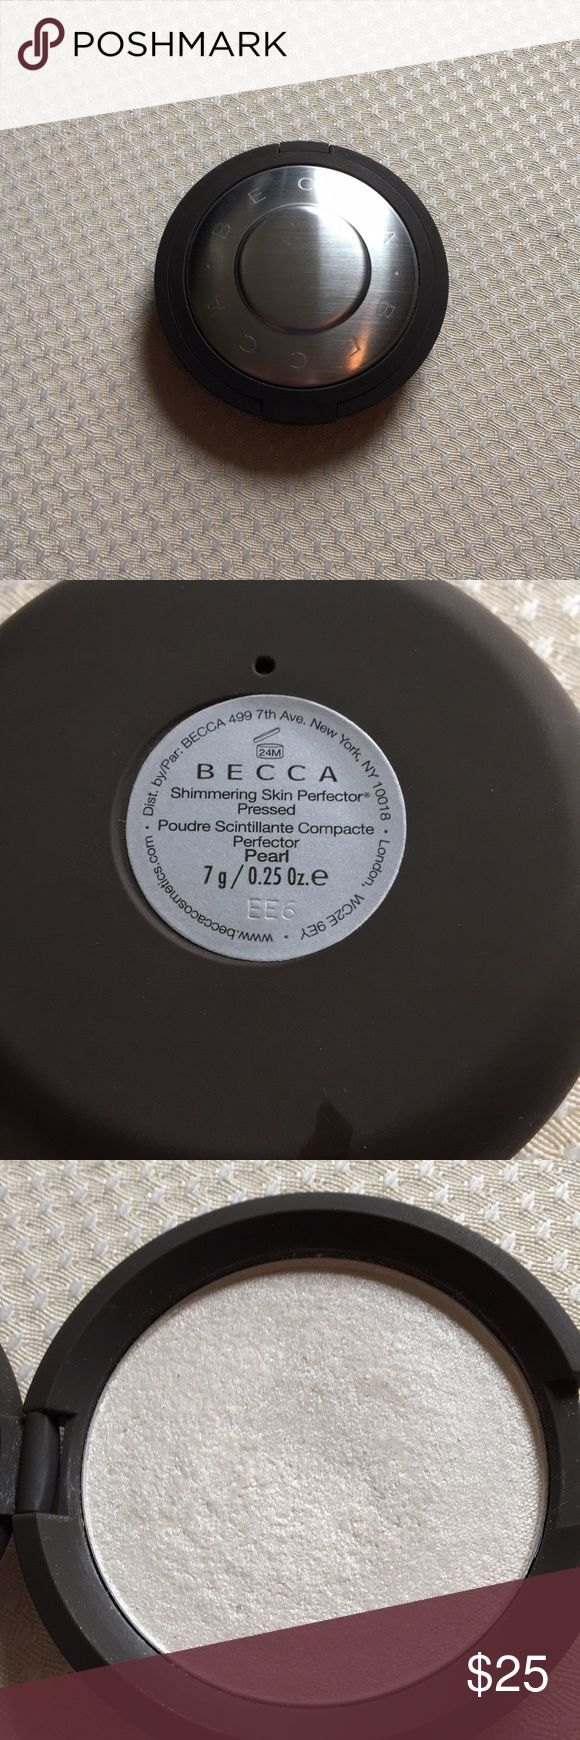 Becca Pearl Highlighter Becca shimmering skin perfector in the shade Pearl, pure white. Good condition. This is the powder not the cream version. Has been repressed but is still in excellent condition. BECCA Makeup Luminizer